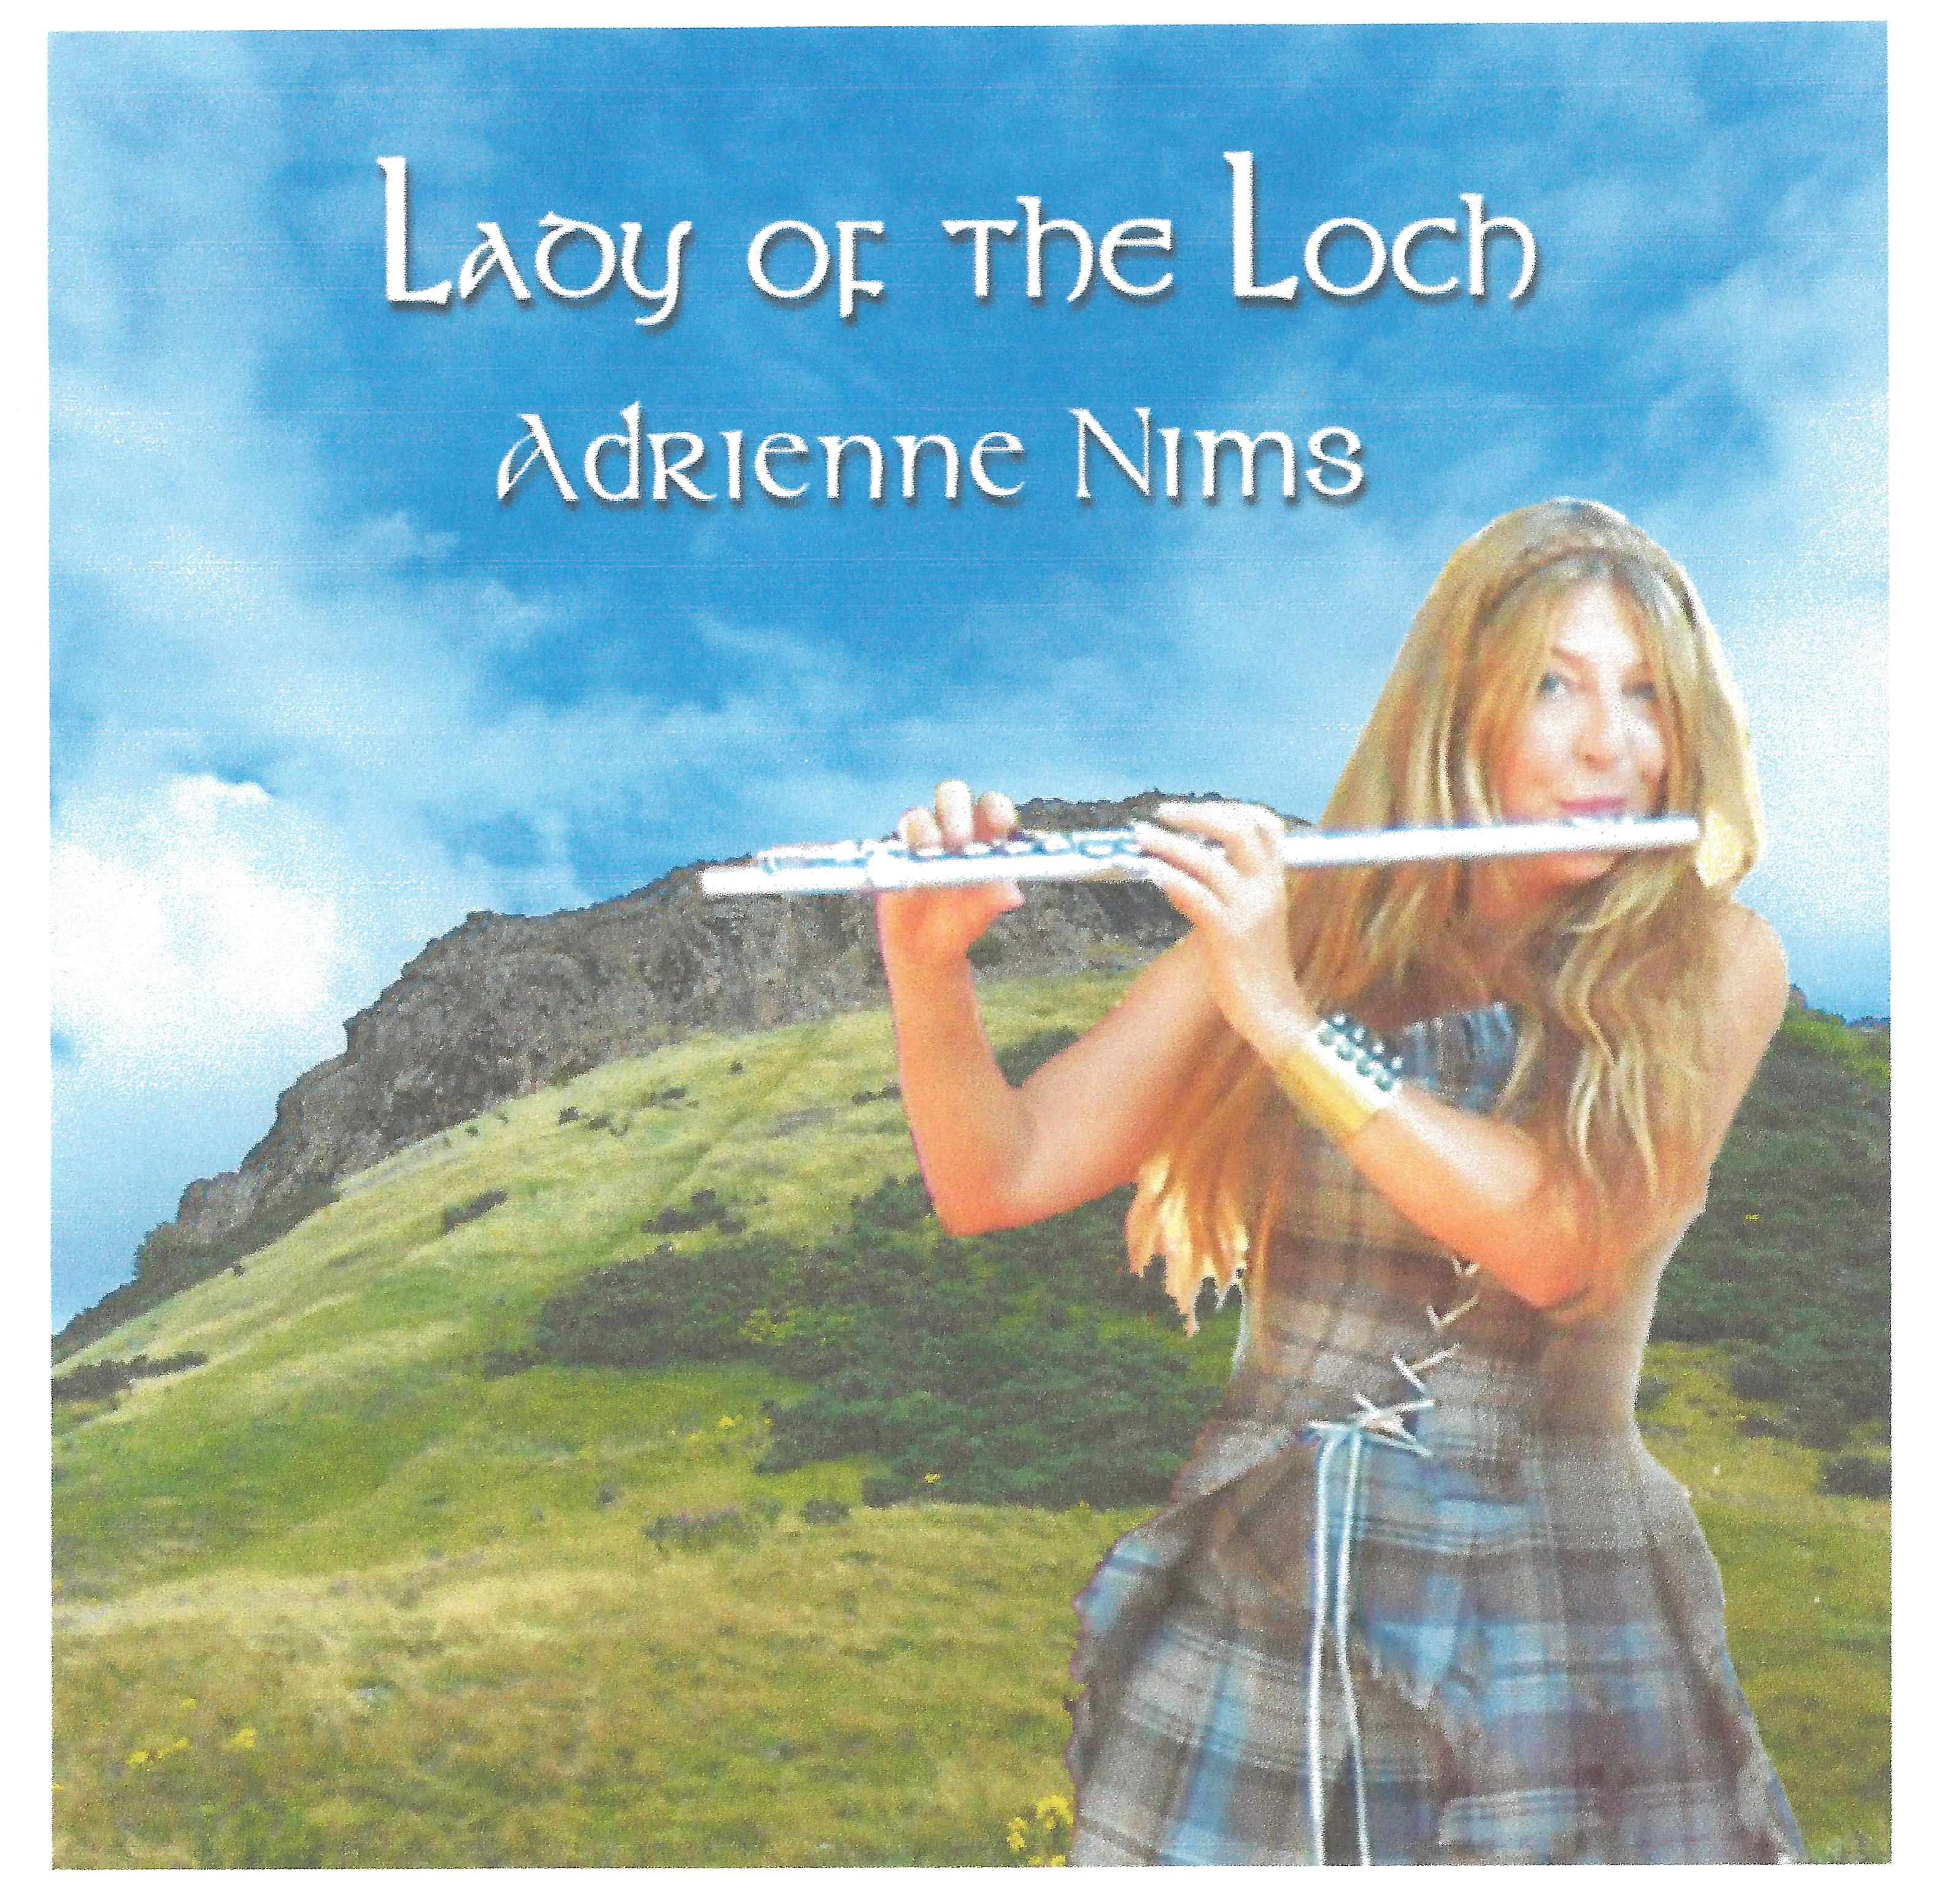 Lady of the Loch